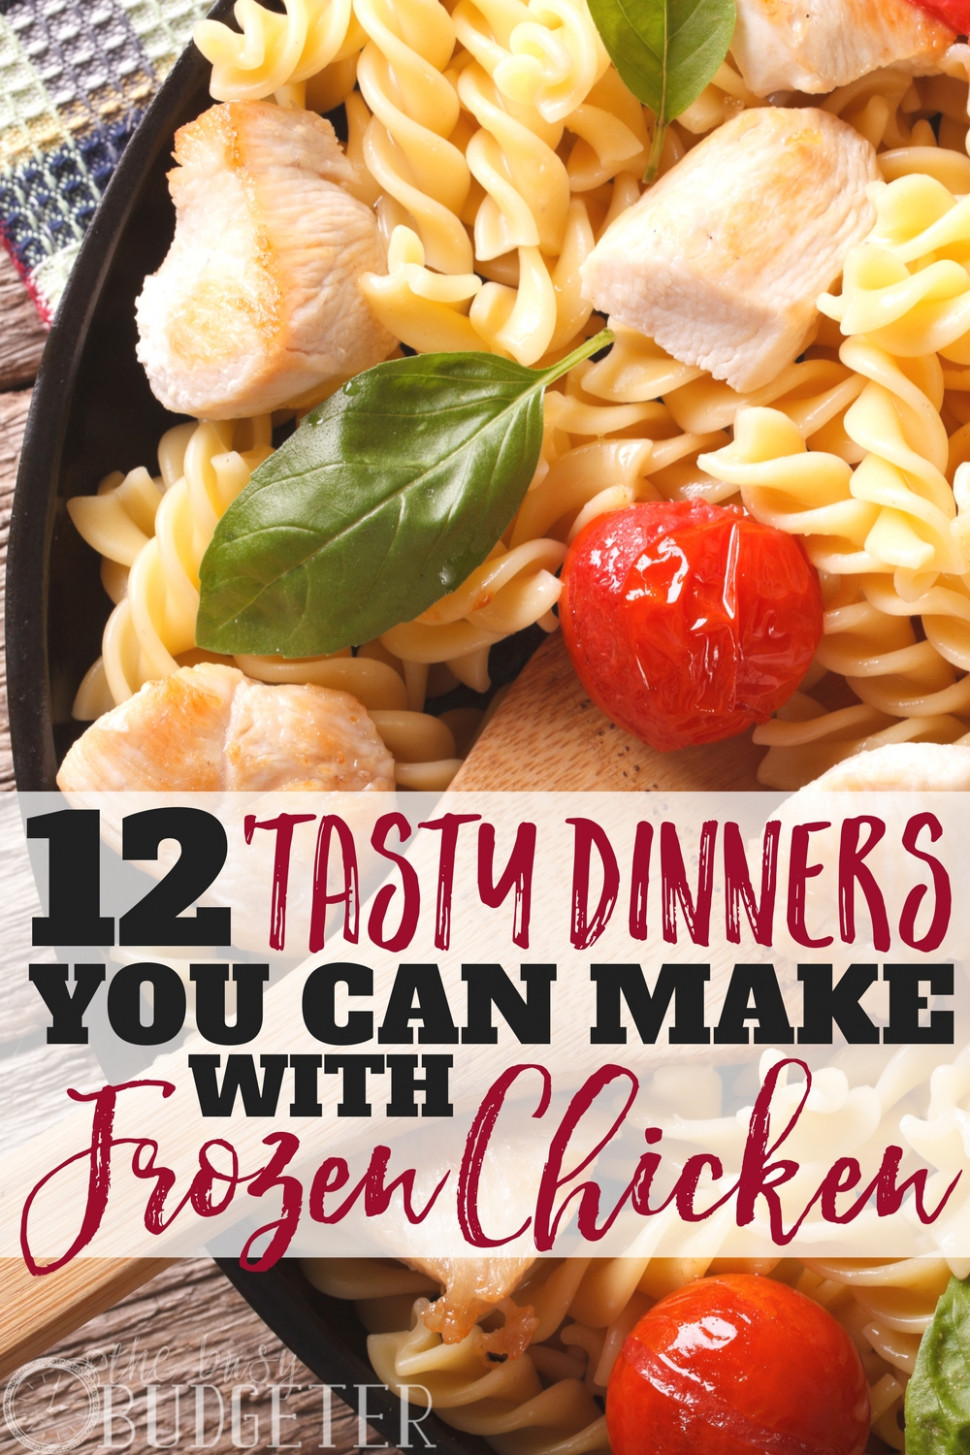 10 Tasty Dinners You Can Make with Frozen Pre-Cooked Chicken ..